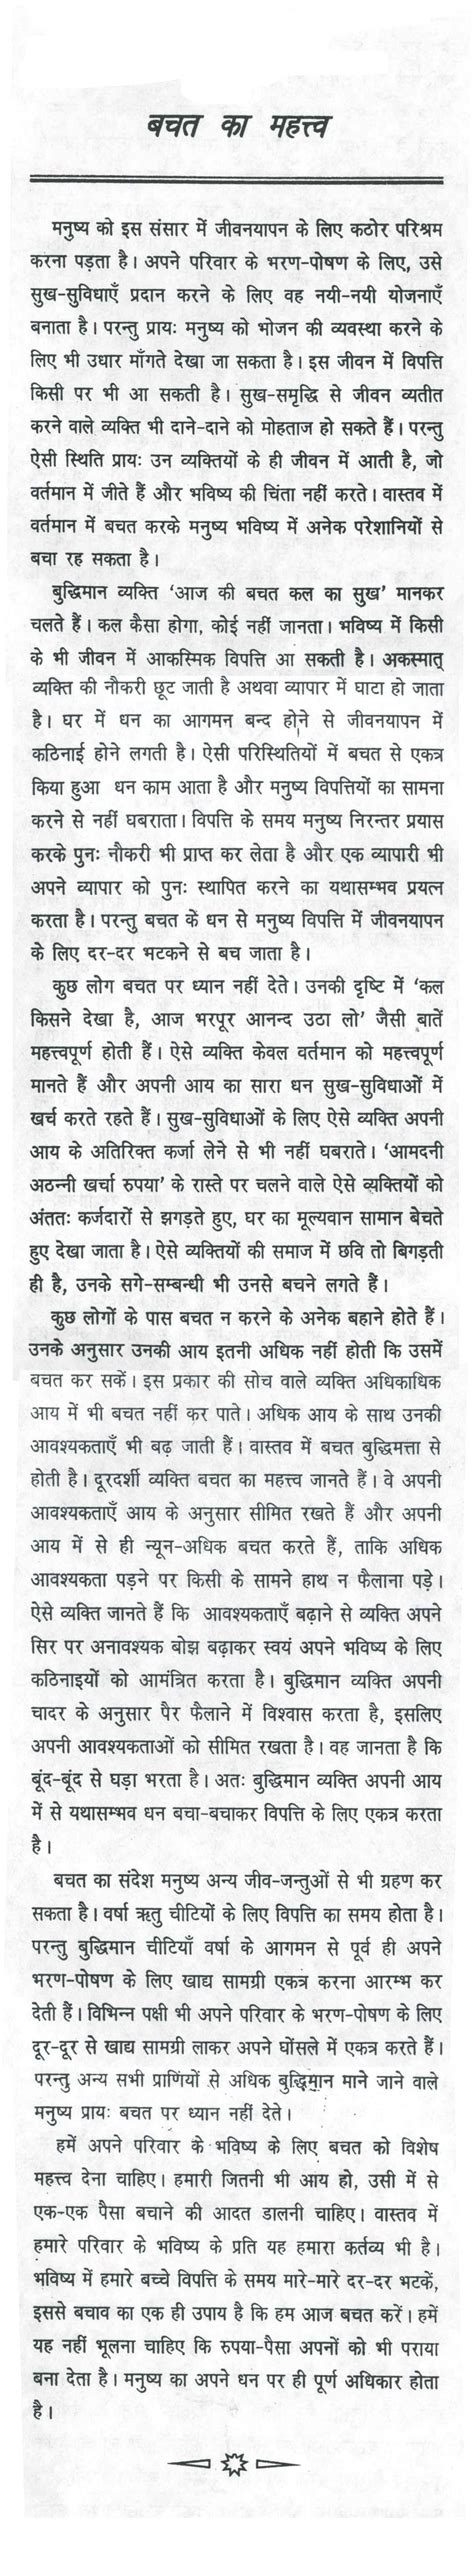 thales biography in hindi language simple essay on importance of water essay on importance